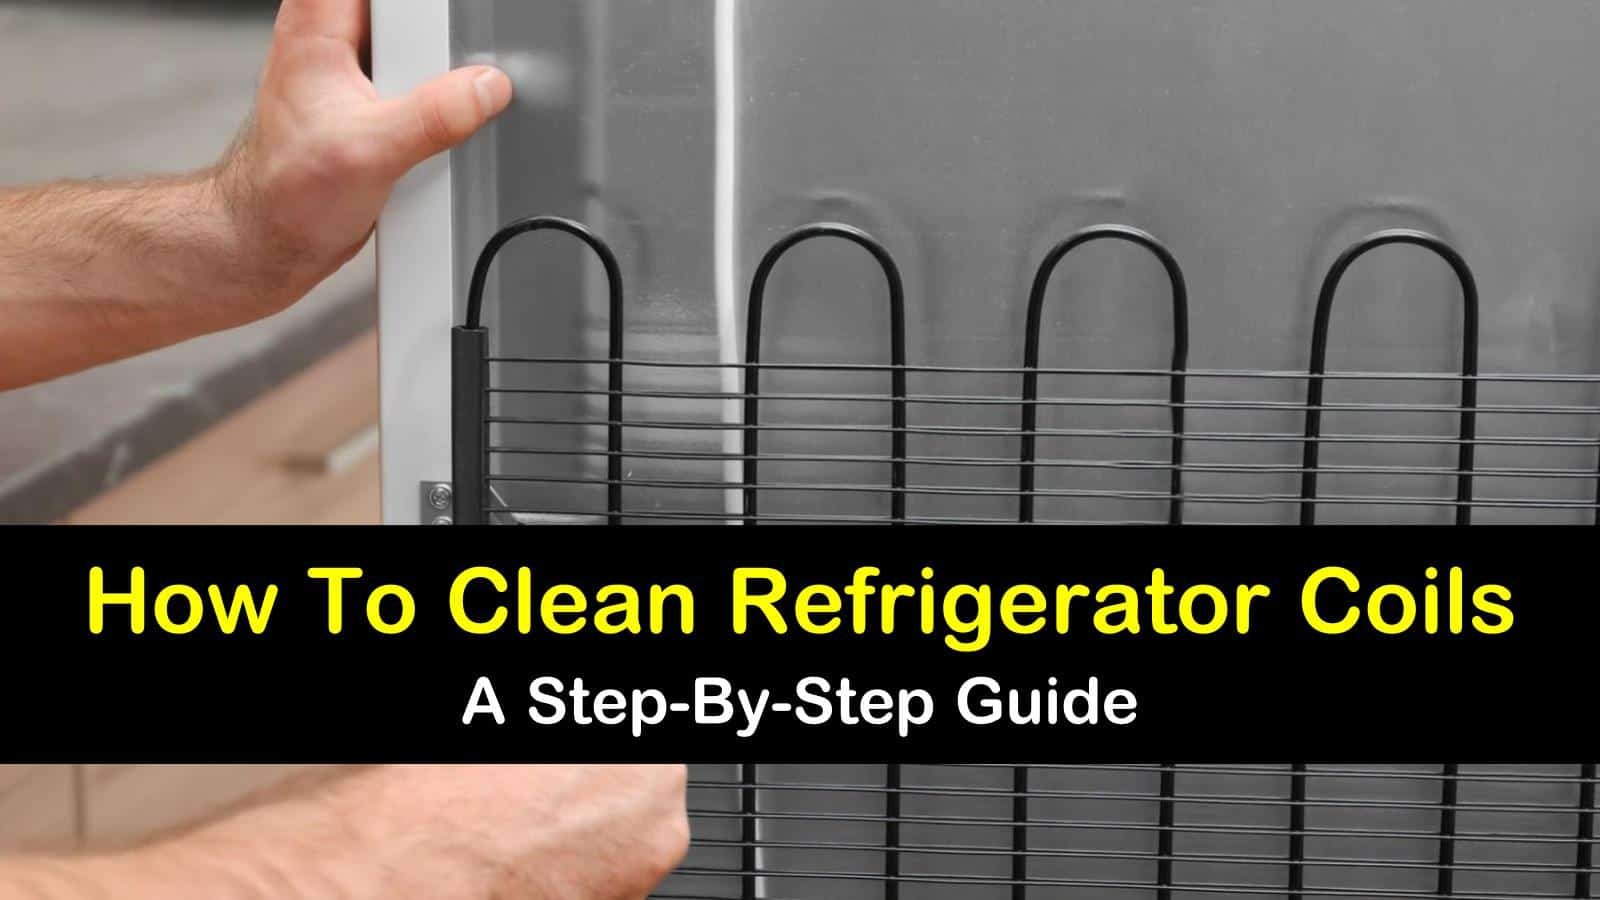 how to clean refrigerator coils titleimg1